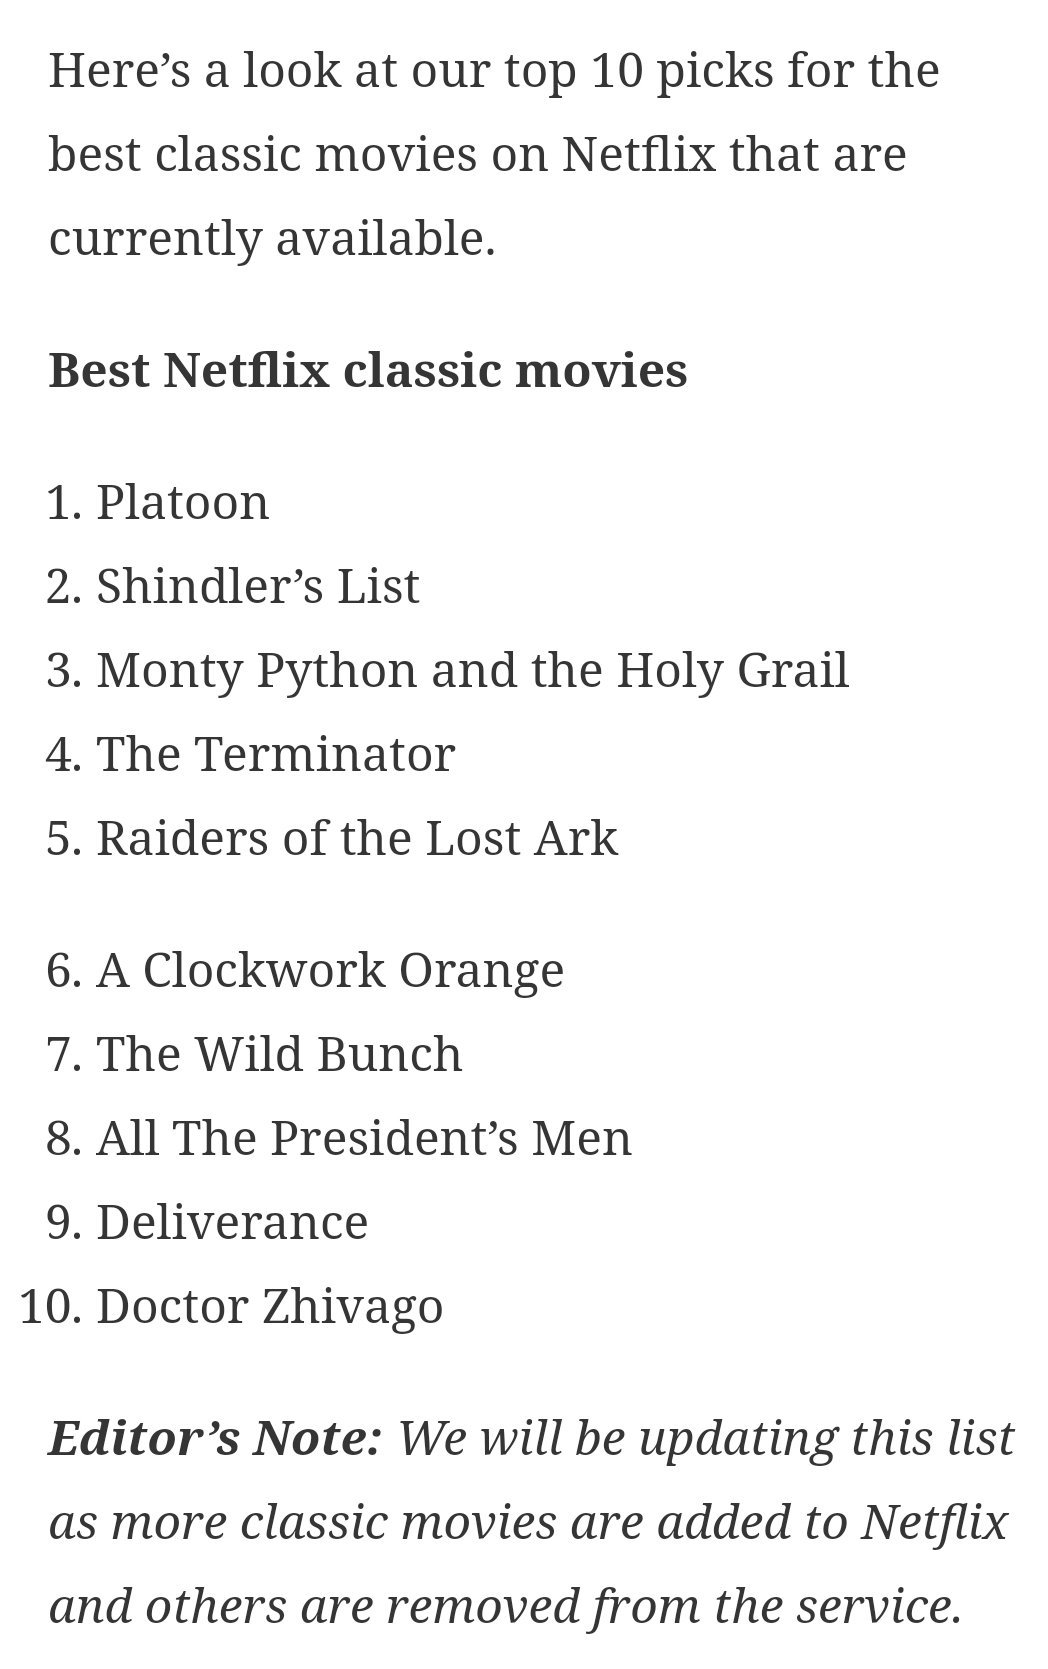 This article lists the 10 best classic movies on Netflix. As you can see, the movies go all the way back to 1965. Wow, 1965! https://t.co/LkTFUZ20xC